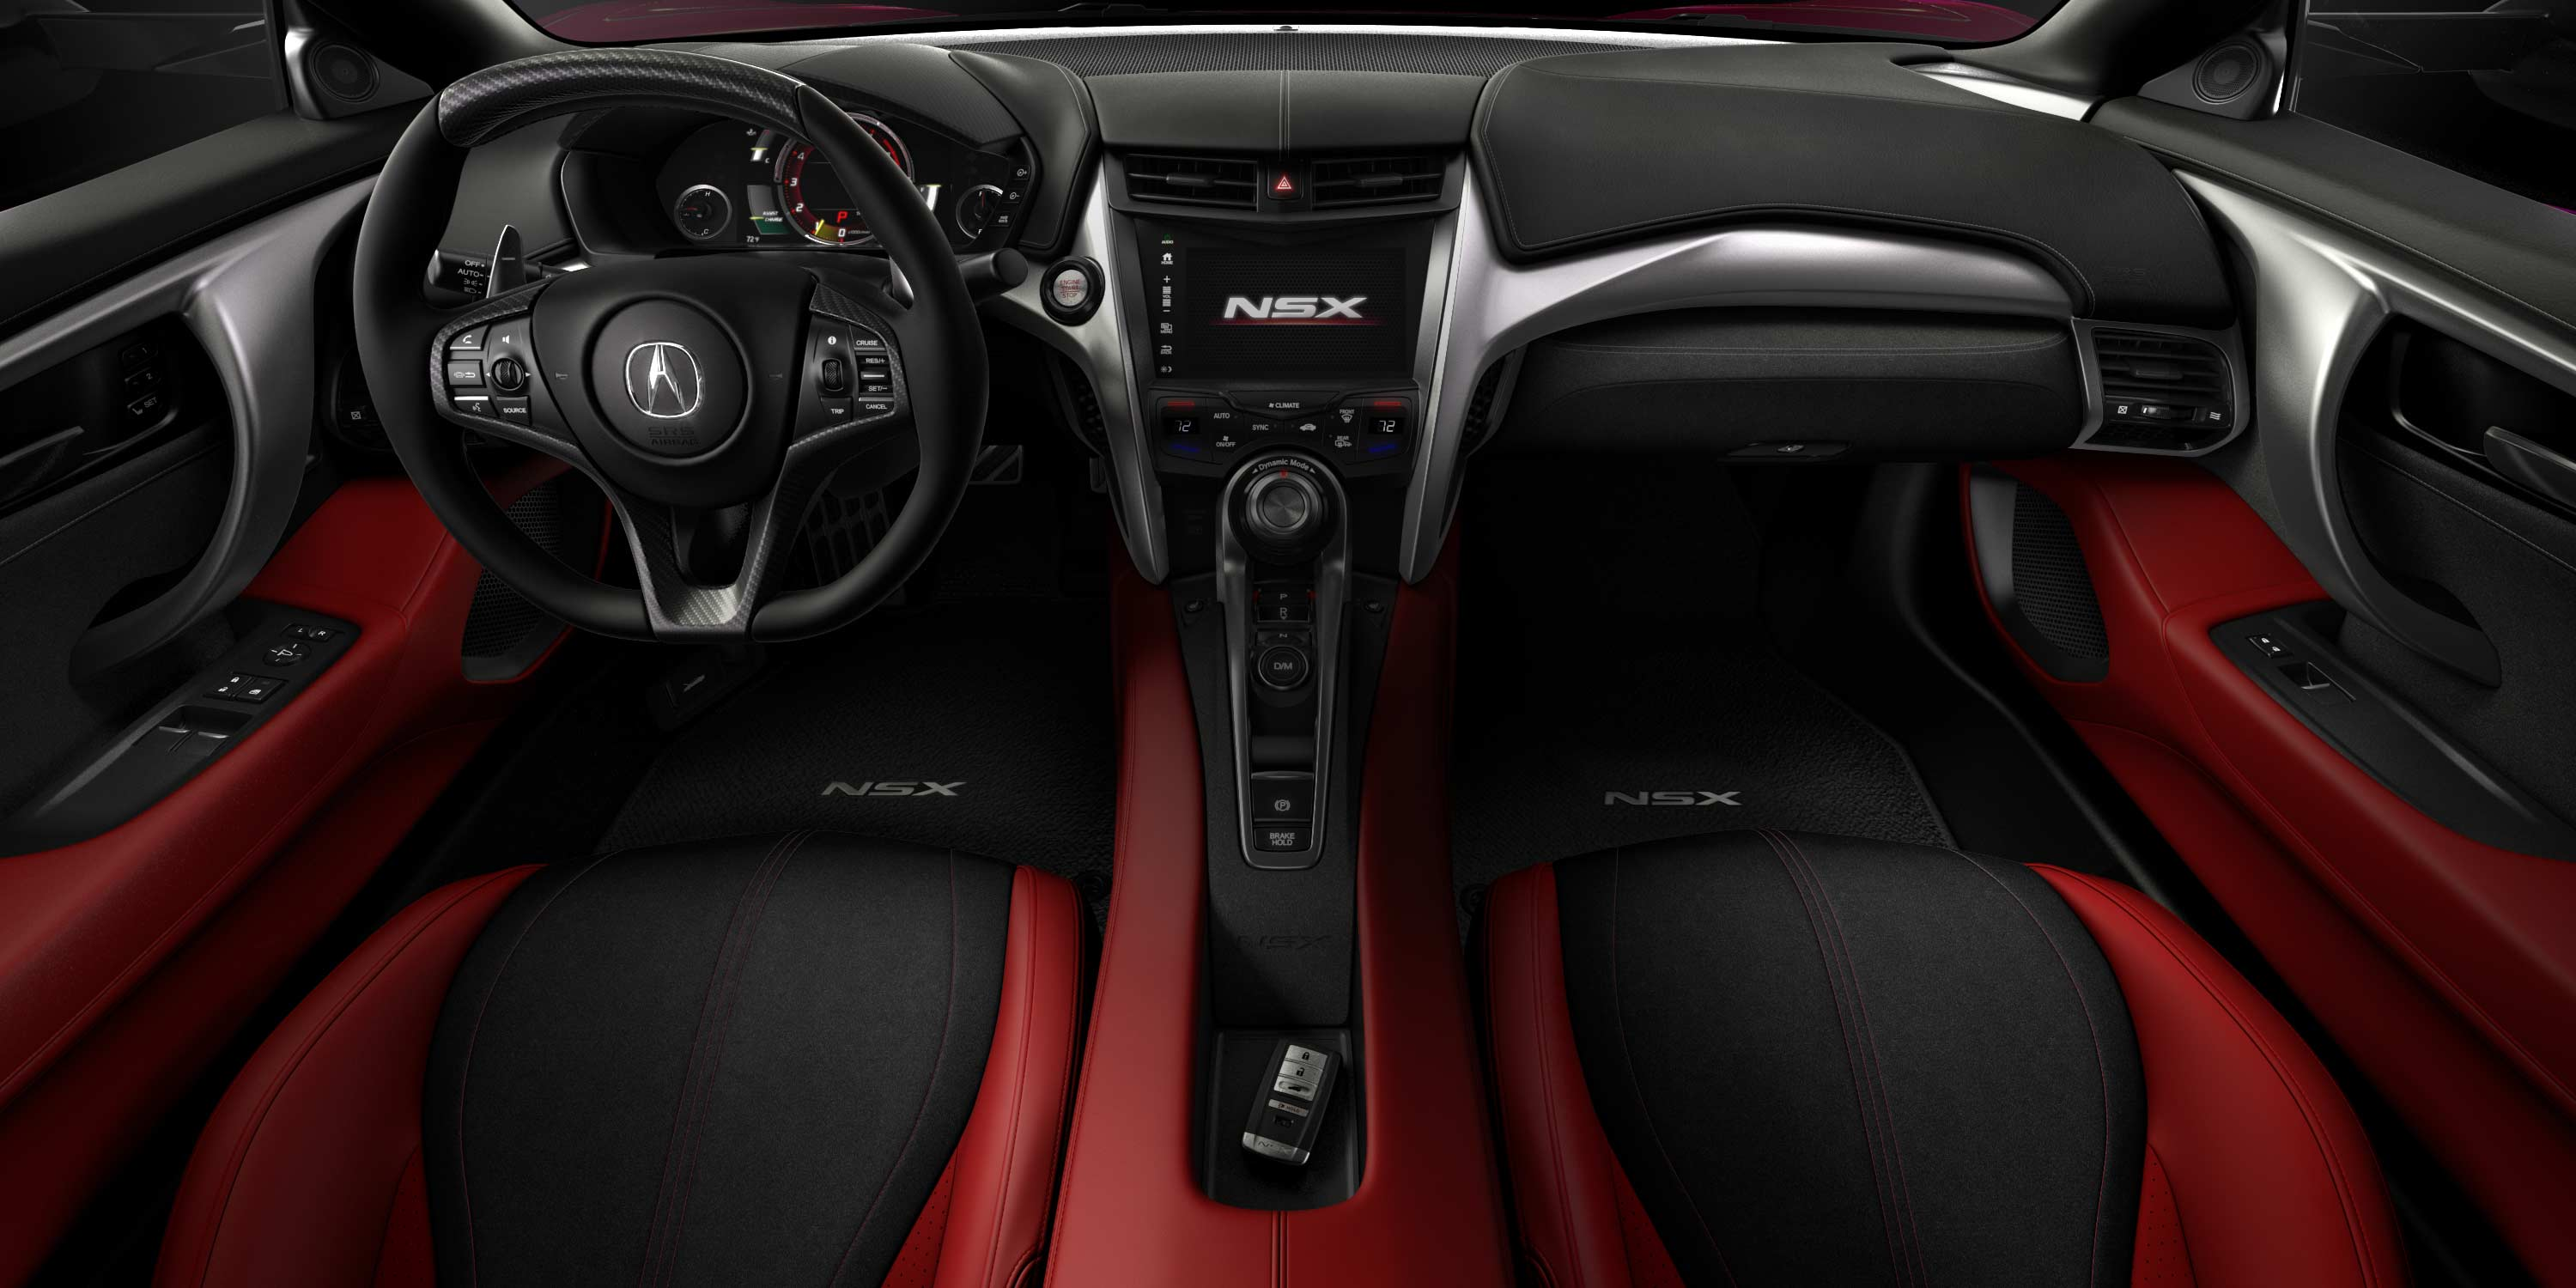 2018 Ford Explorer Spec >> Acura Nsx Interior | www.pixshark.com - Images Galleries With A Bite!